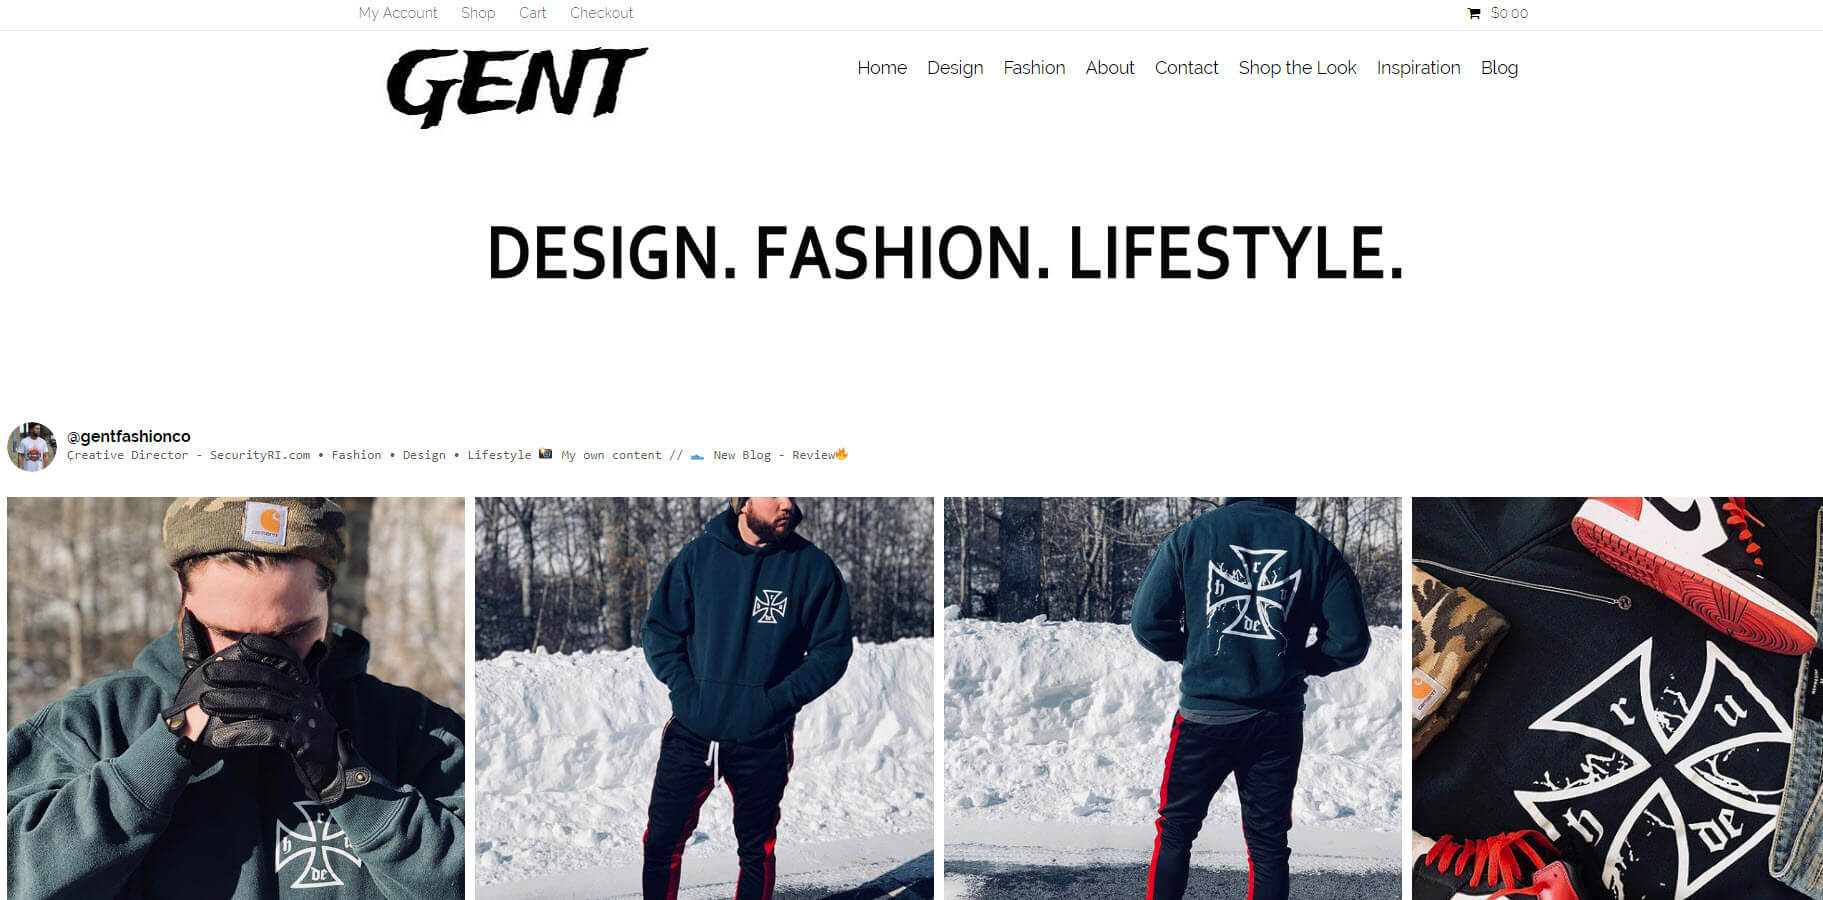 Gent Designs Fashion